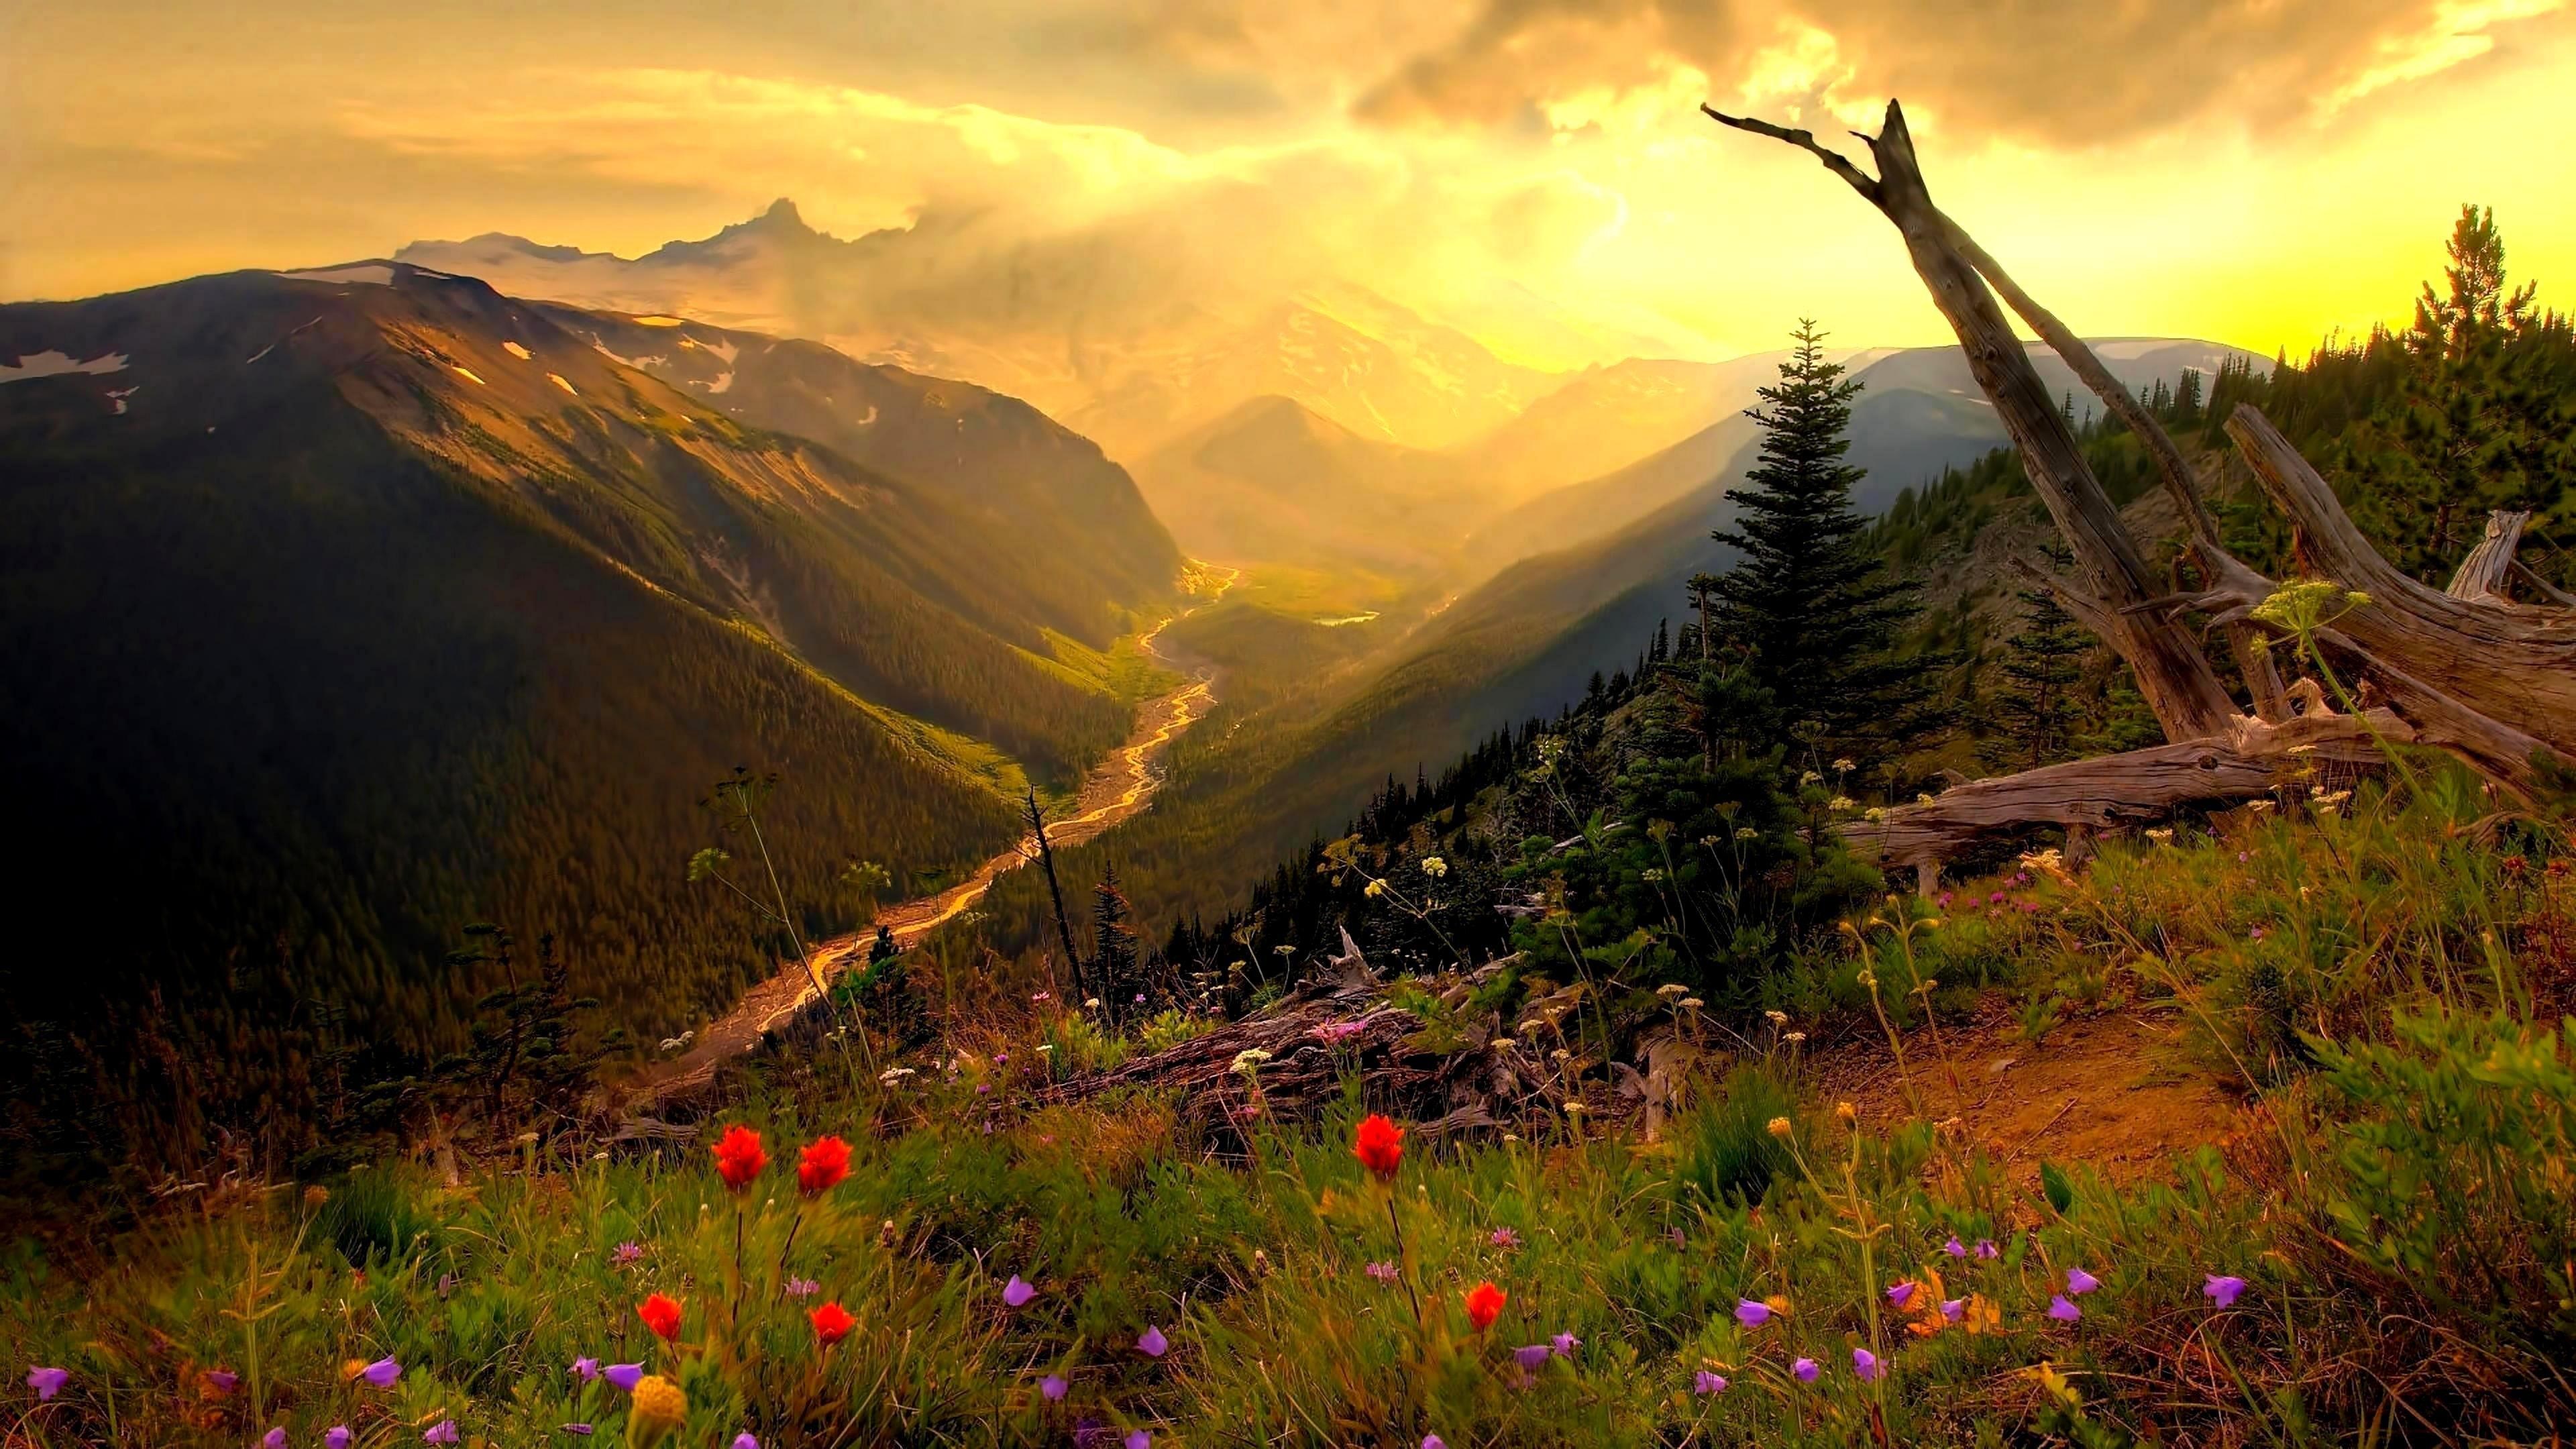 Amazing Nature Wallpapers For Whatapp Dp 4021753 Beautiful Nature Landscape Photography Scenery